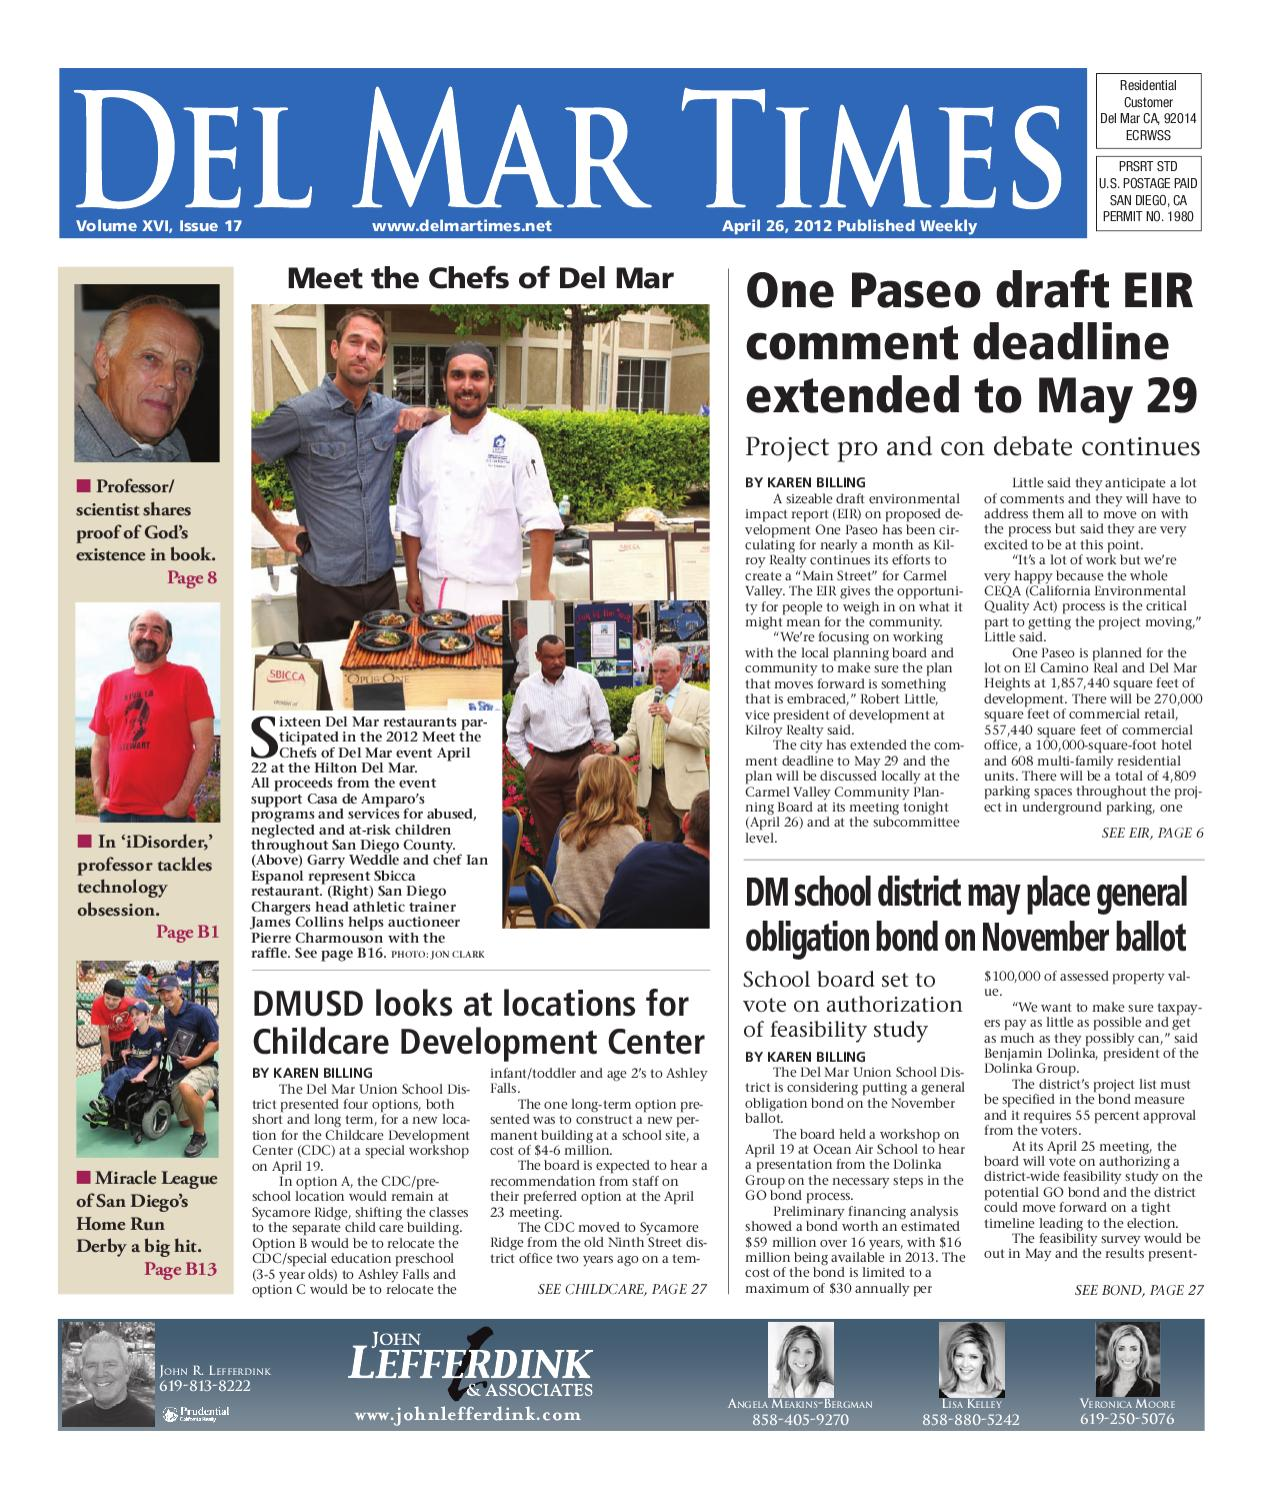 del mar times 4 26 12 by mainstreet media issuu